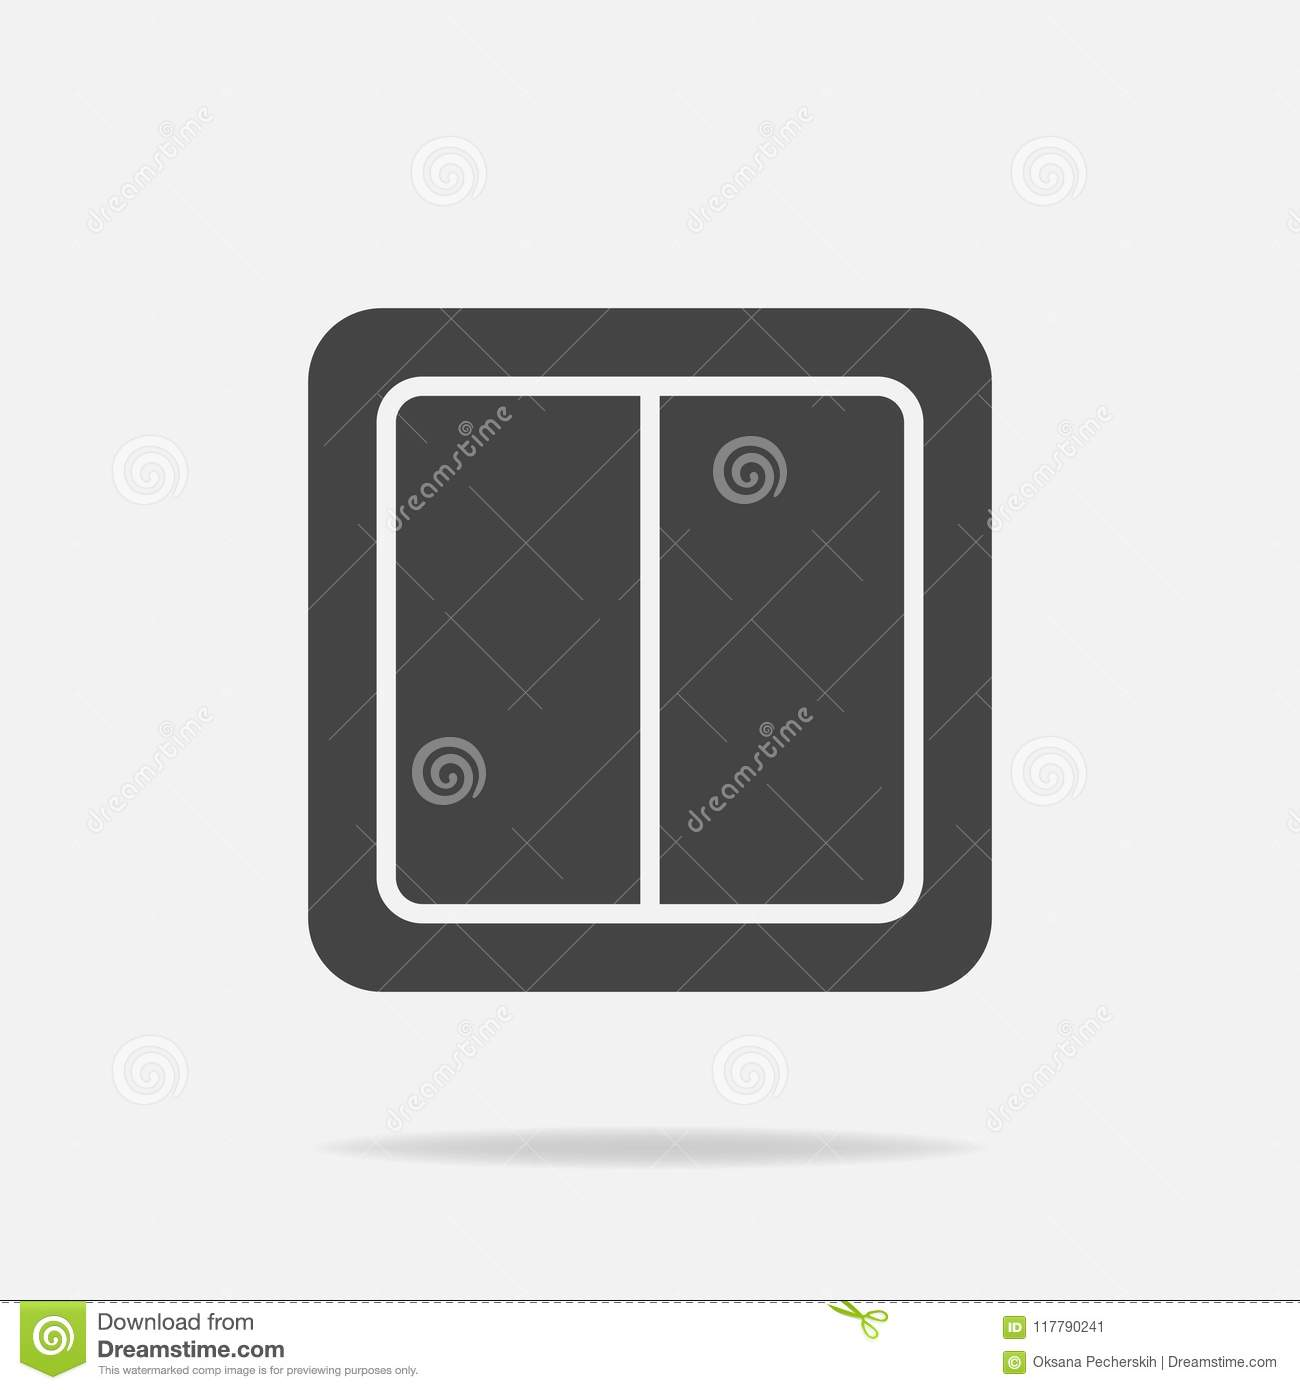 Electrical Switch Vector Icon. Light Switch Icon. Stock Vector ...